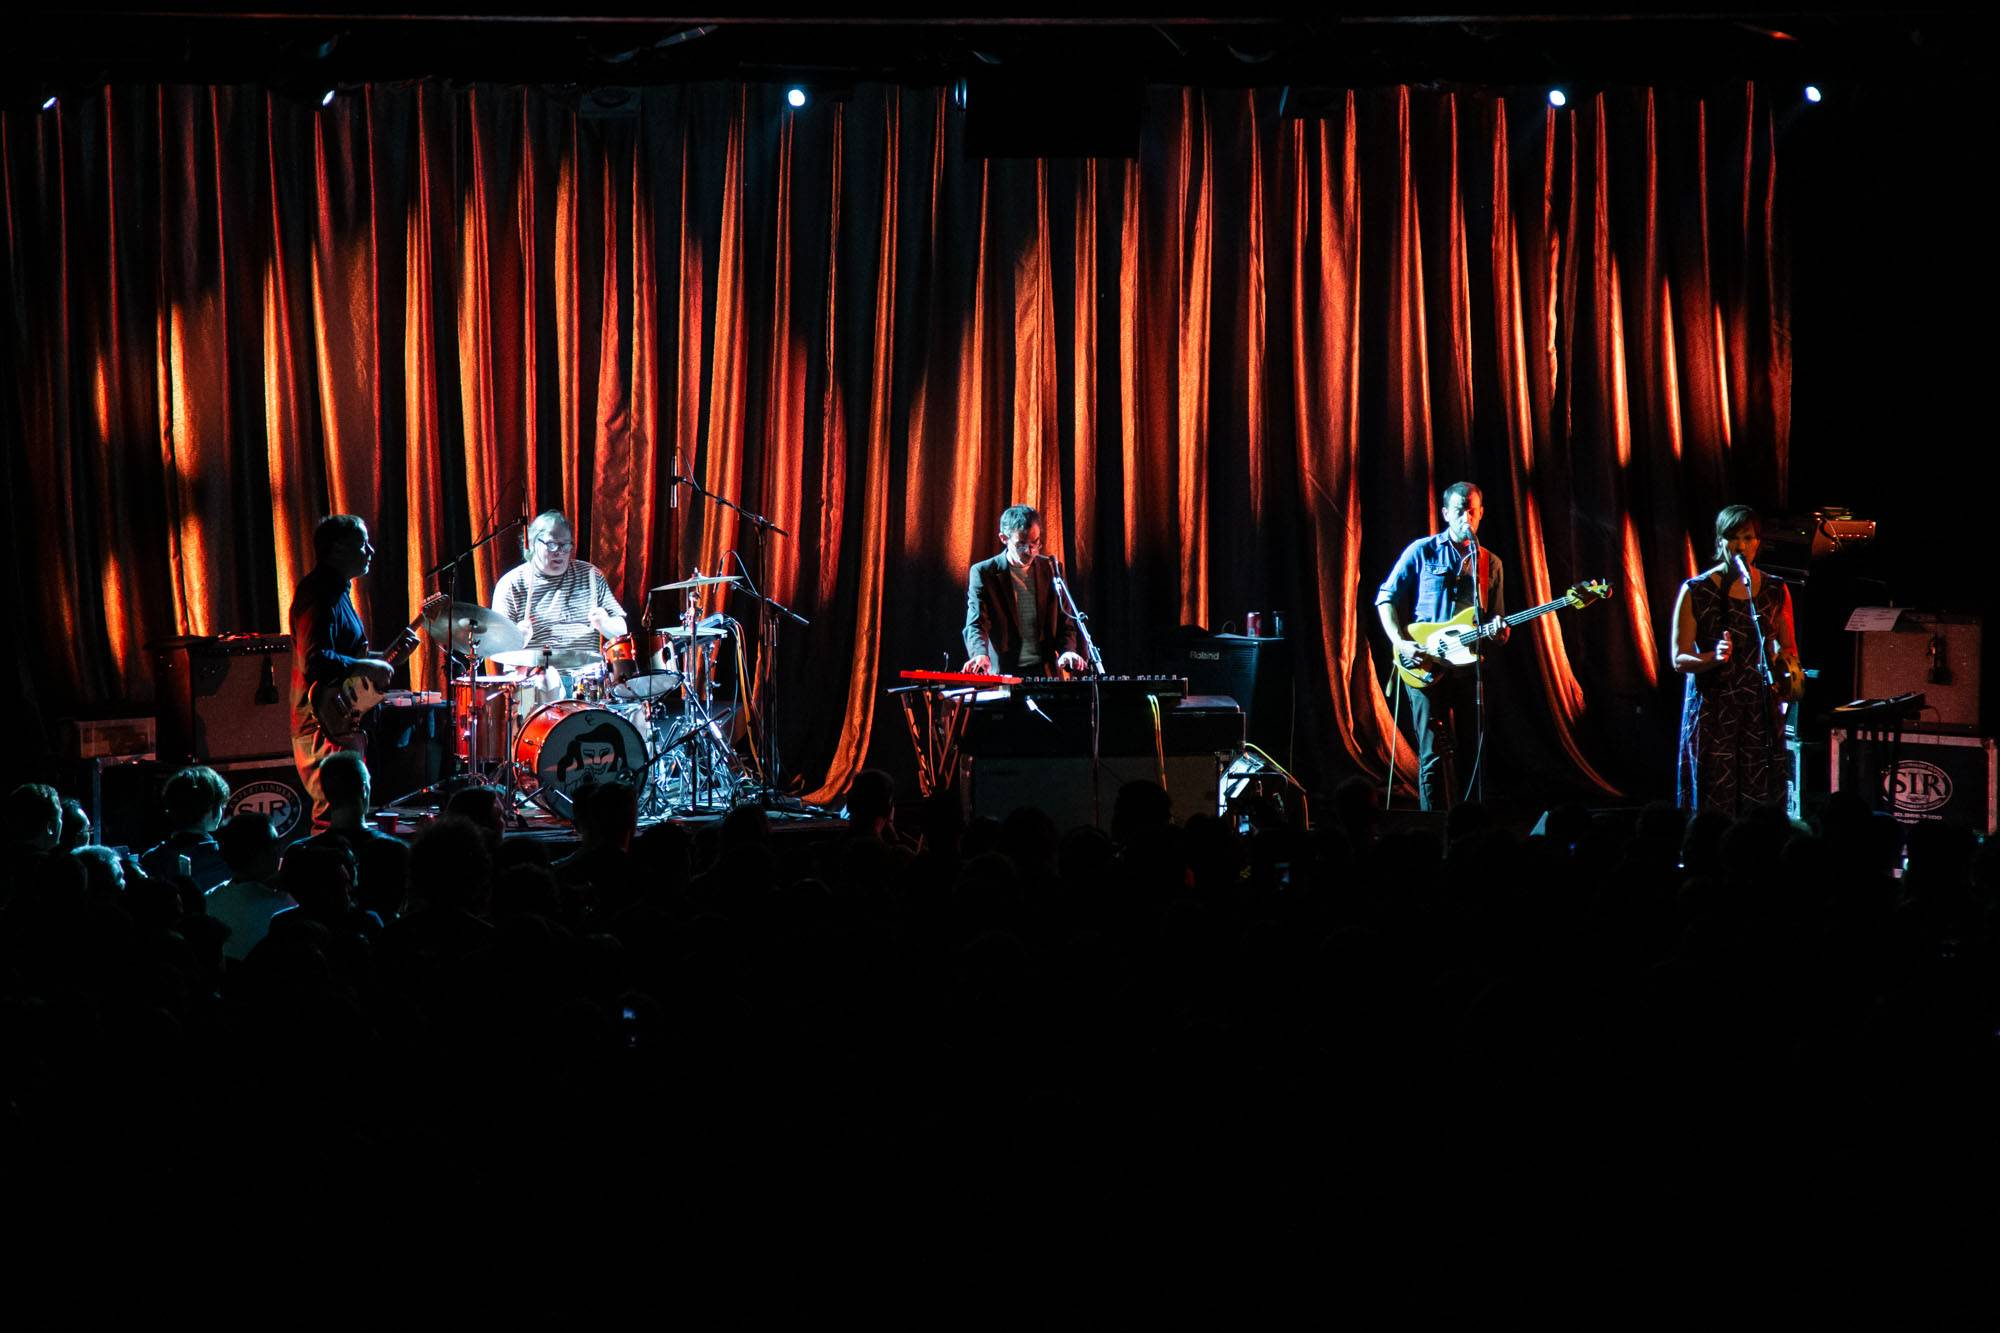 Stereolab at the Commodore Ballroom, Vancouver, Oct 14 2019. Kirk Chantraine photo.